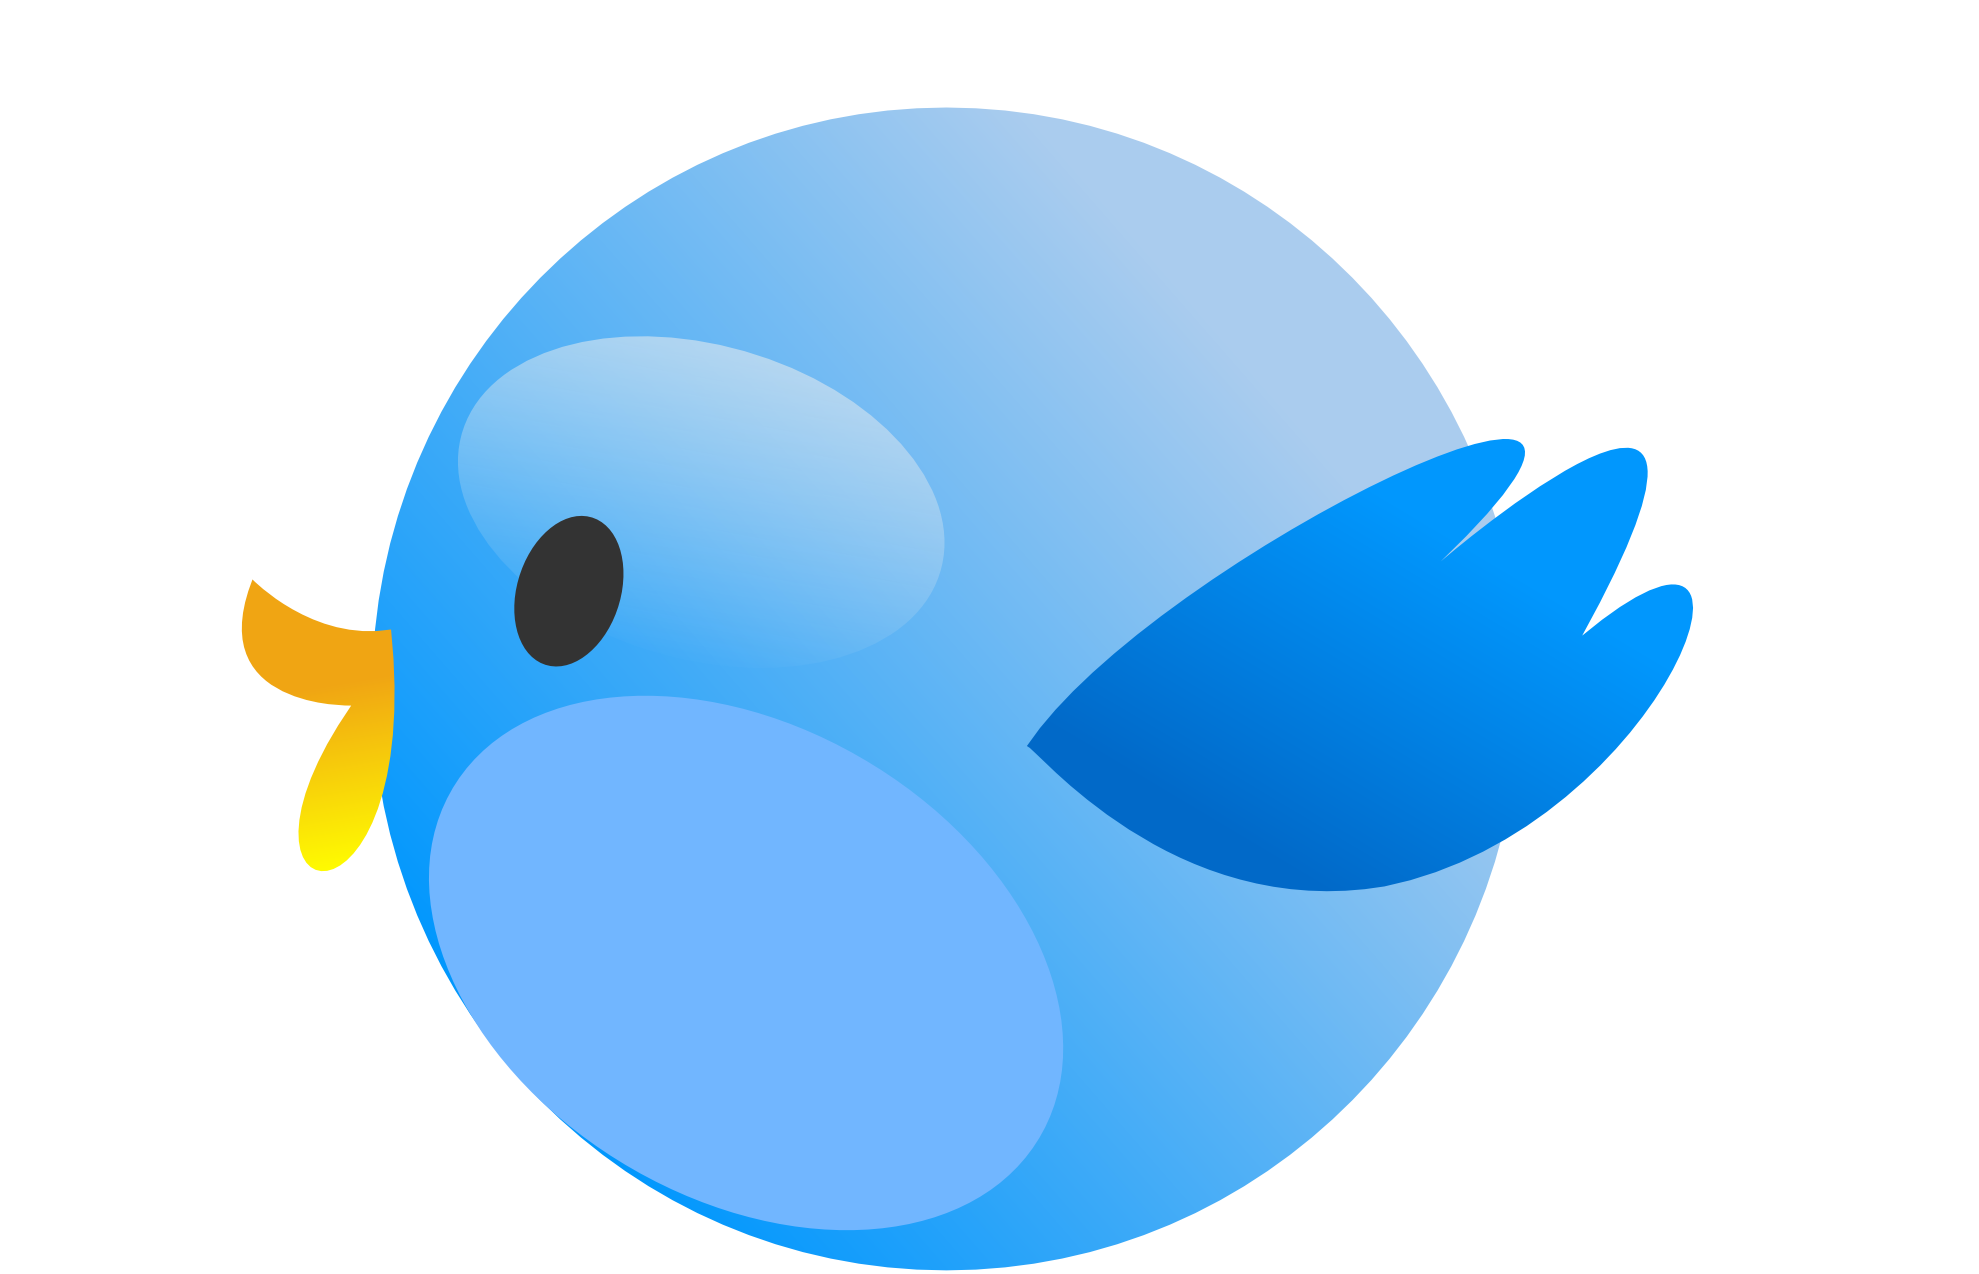 Twitter clipart clip art royalty free clipartist.net » Clip Art » tweet twitter bird 2 clipartist.net 2012 ... clip art royalty free